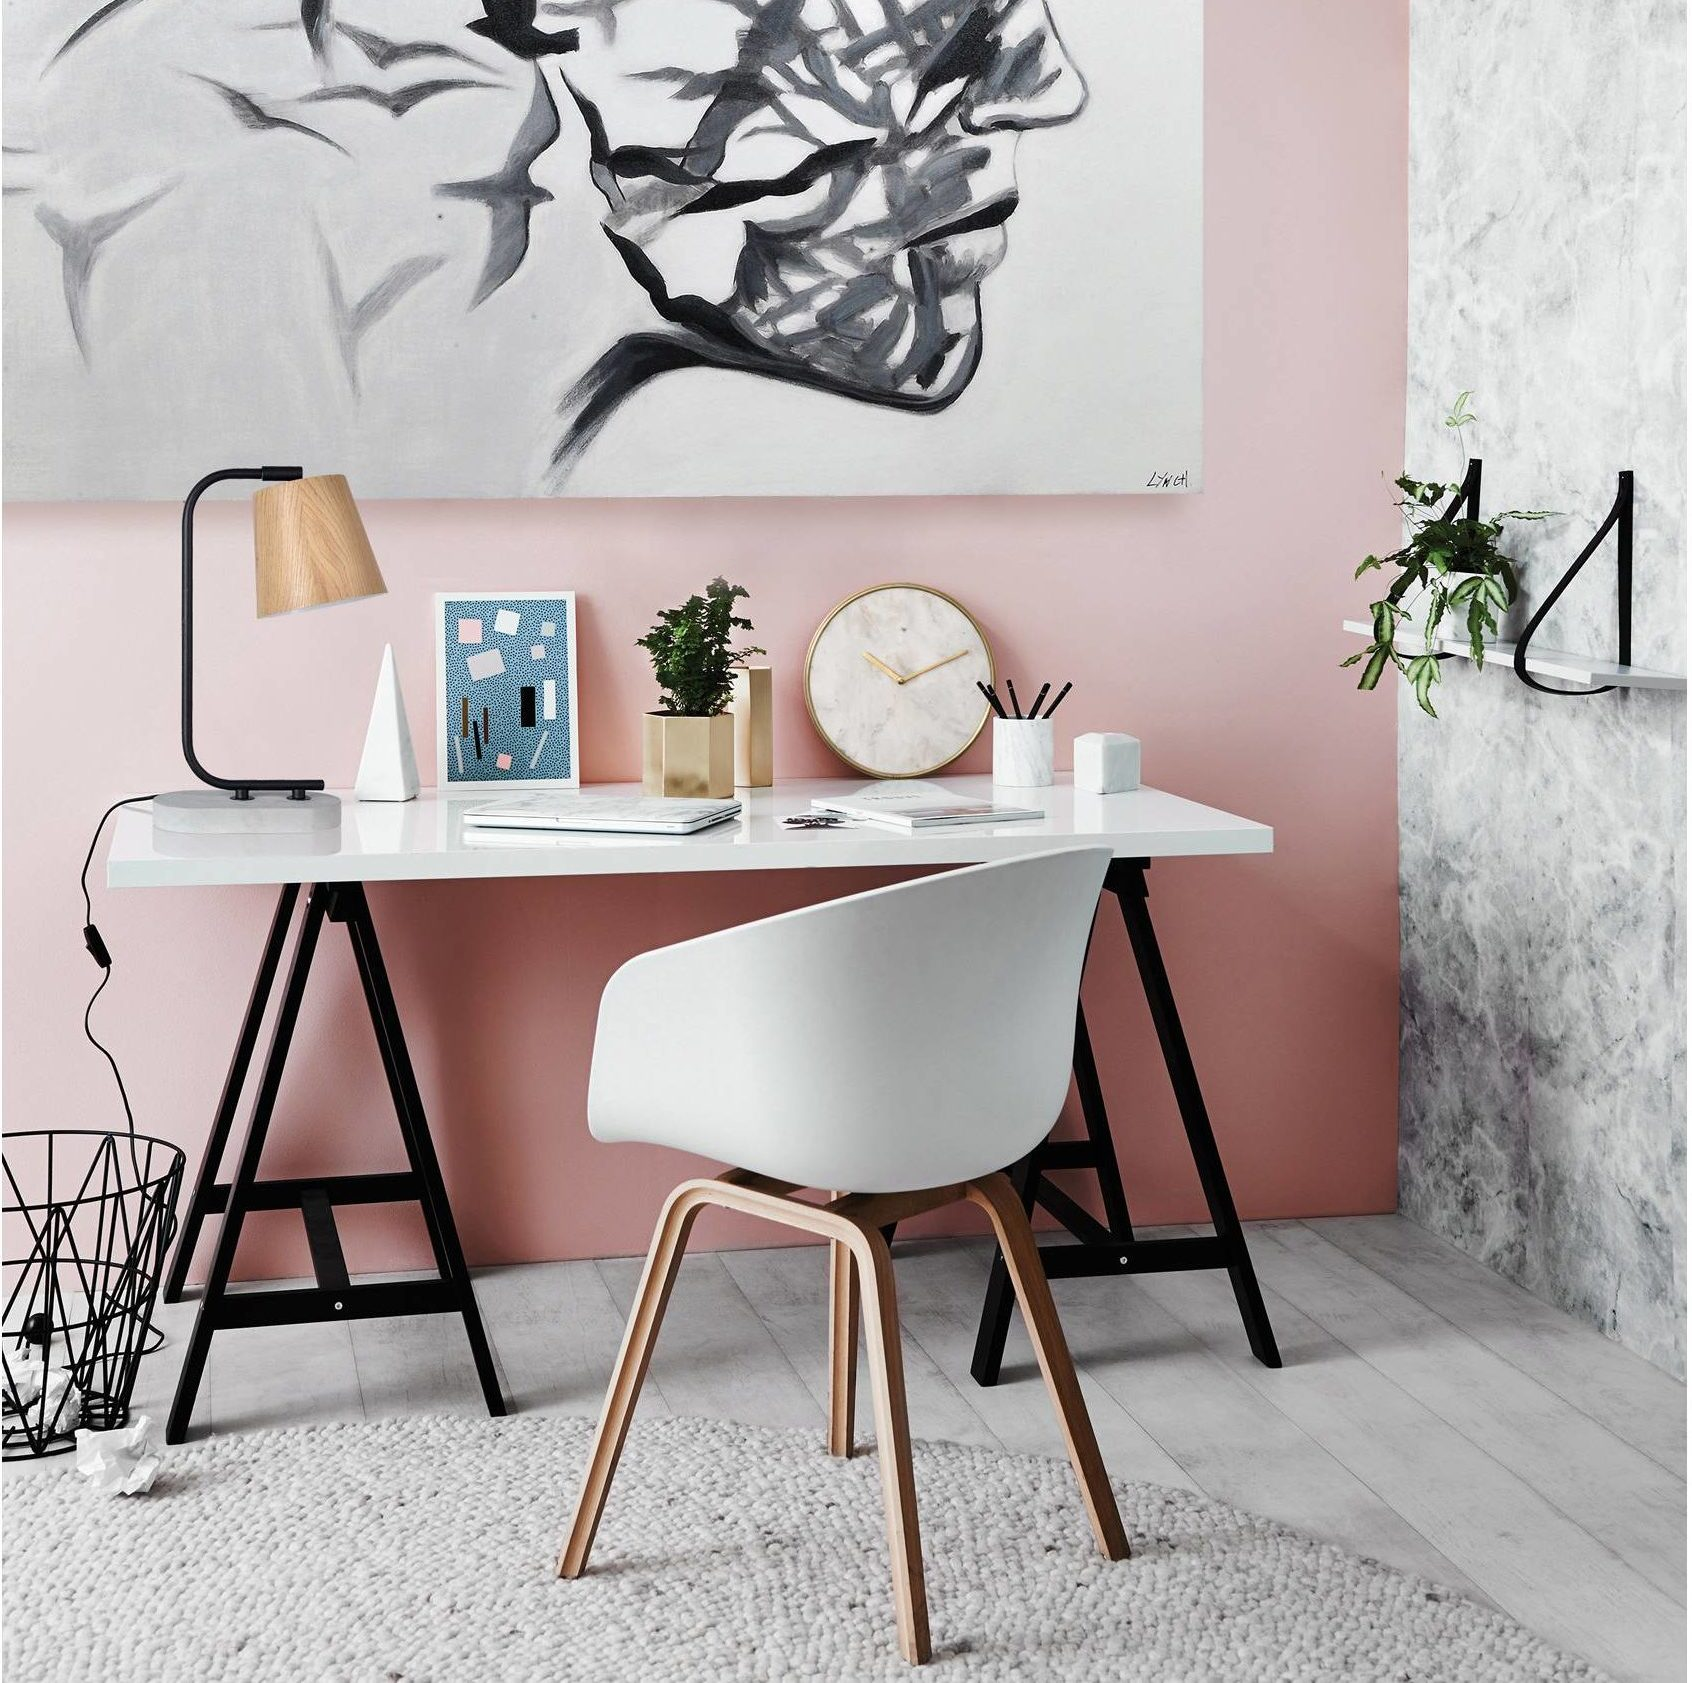 Modern Chic Buckland Table Lamp Artsy Office Space